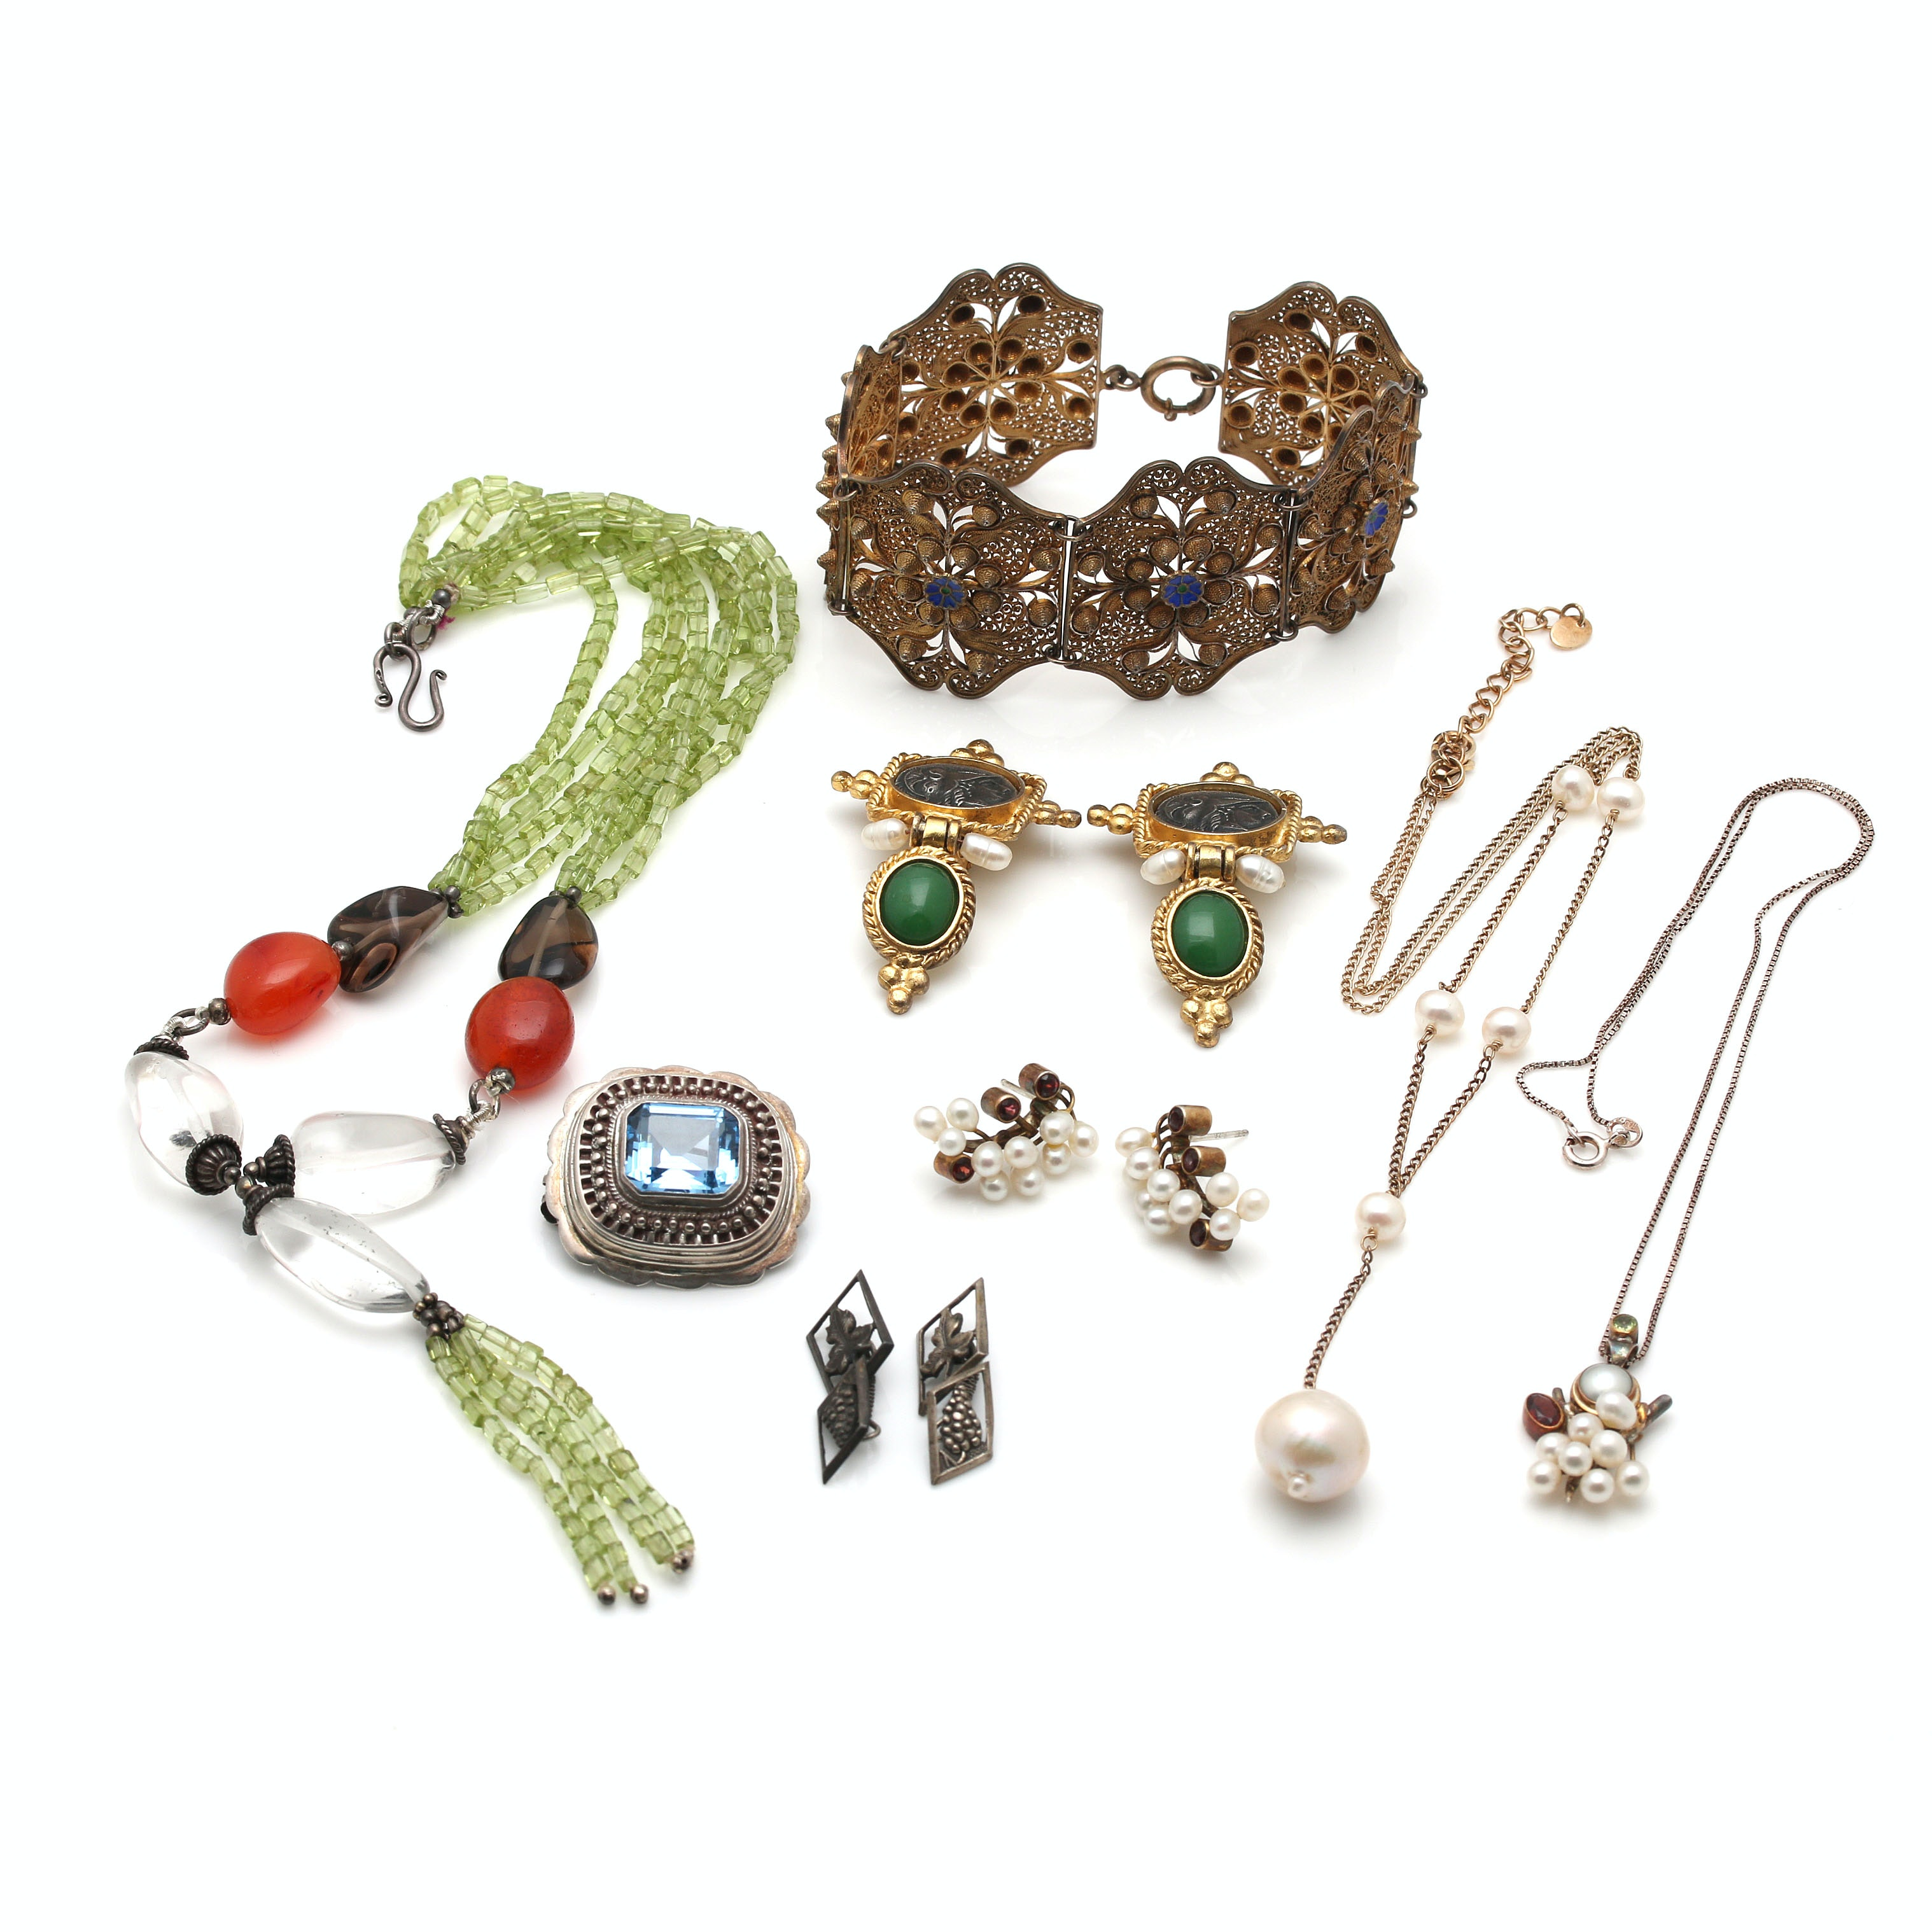 Assortment of Sterling Silver Jewelry including an 800 Silver Converter Brooch